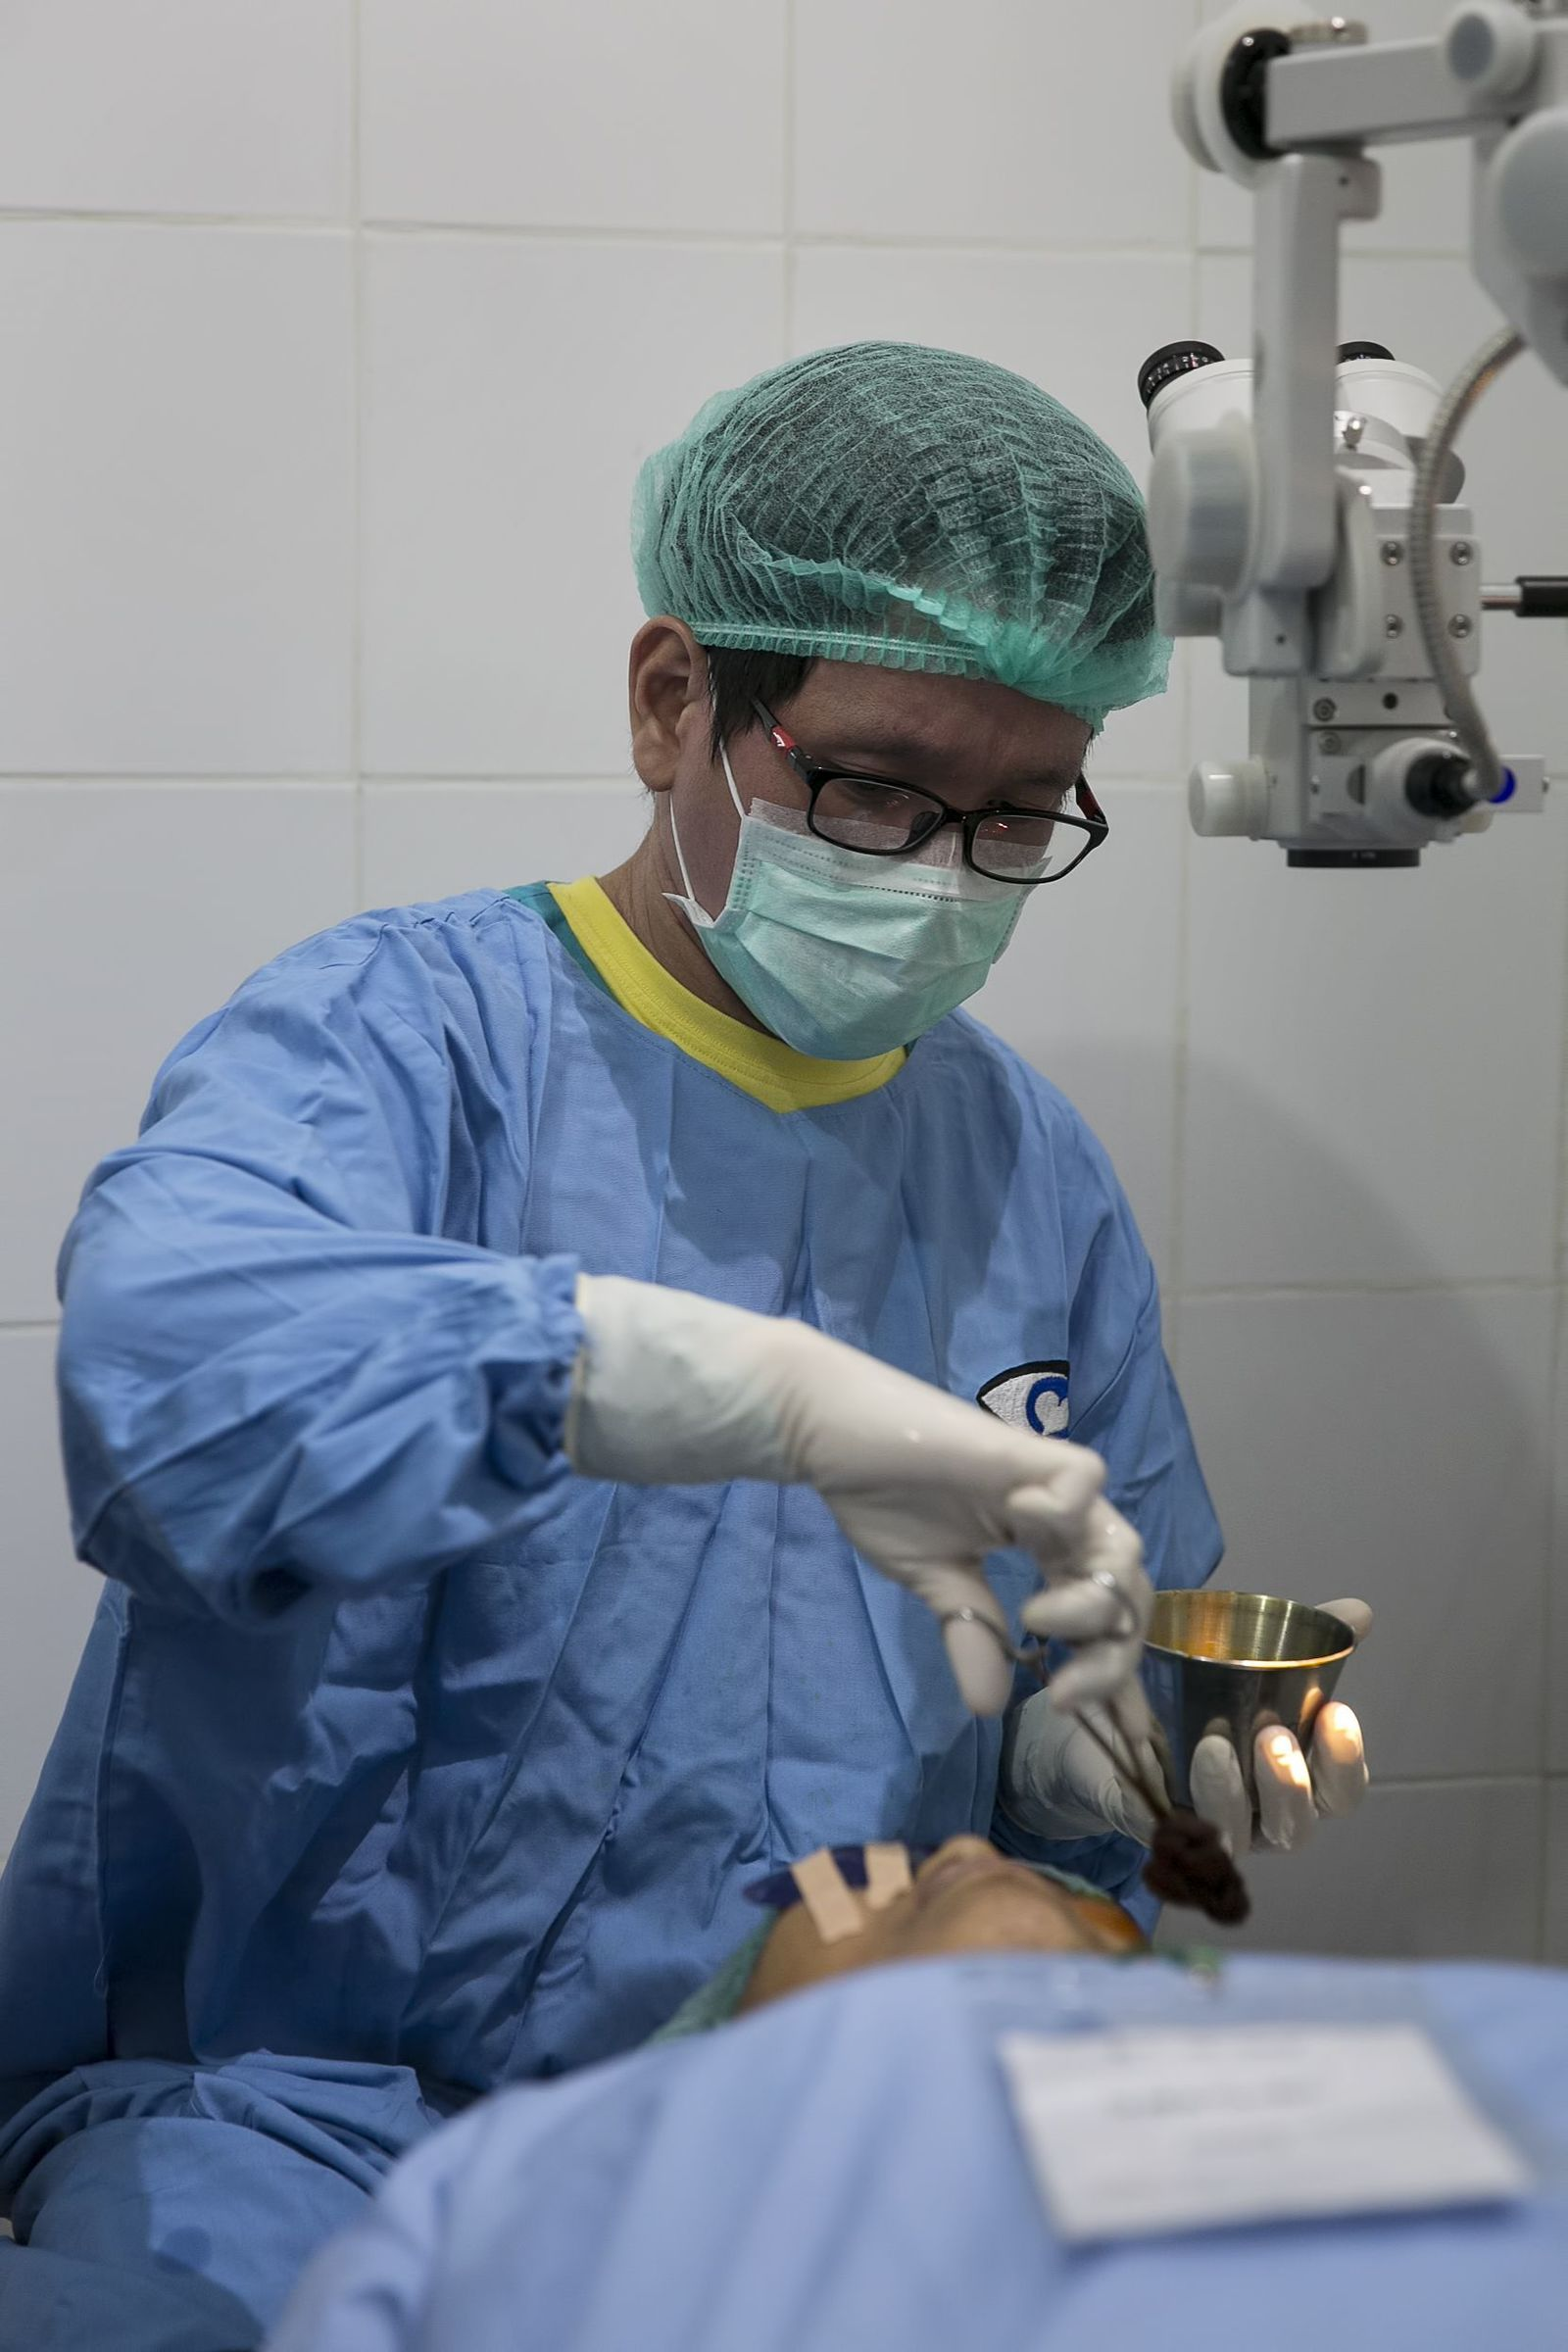 Cataract Surgery in Indonesia